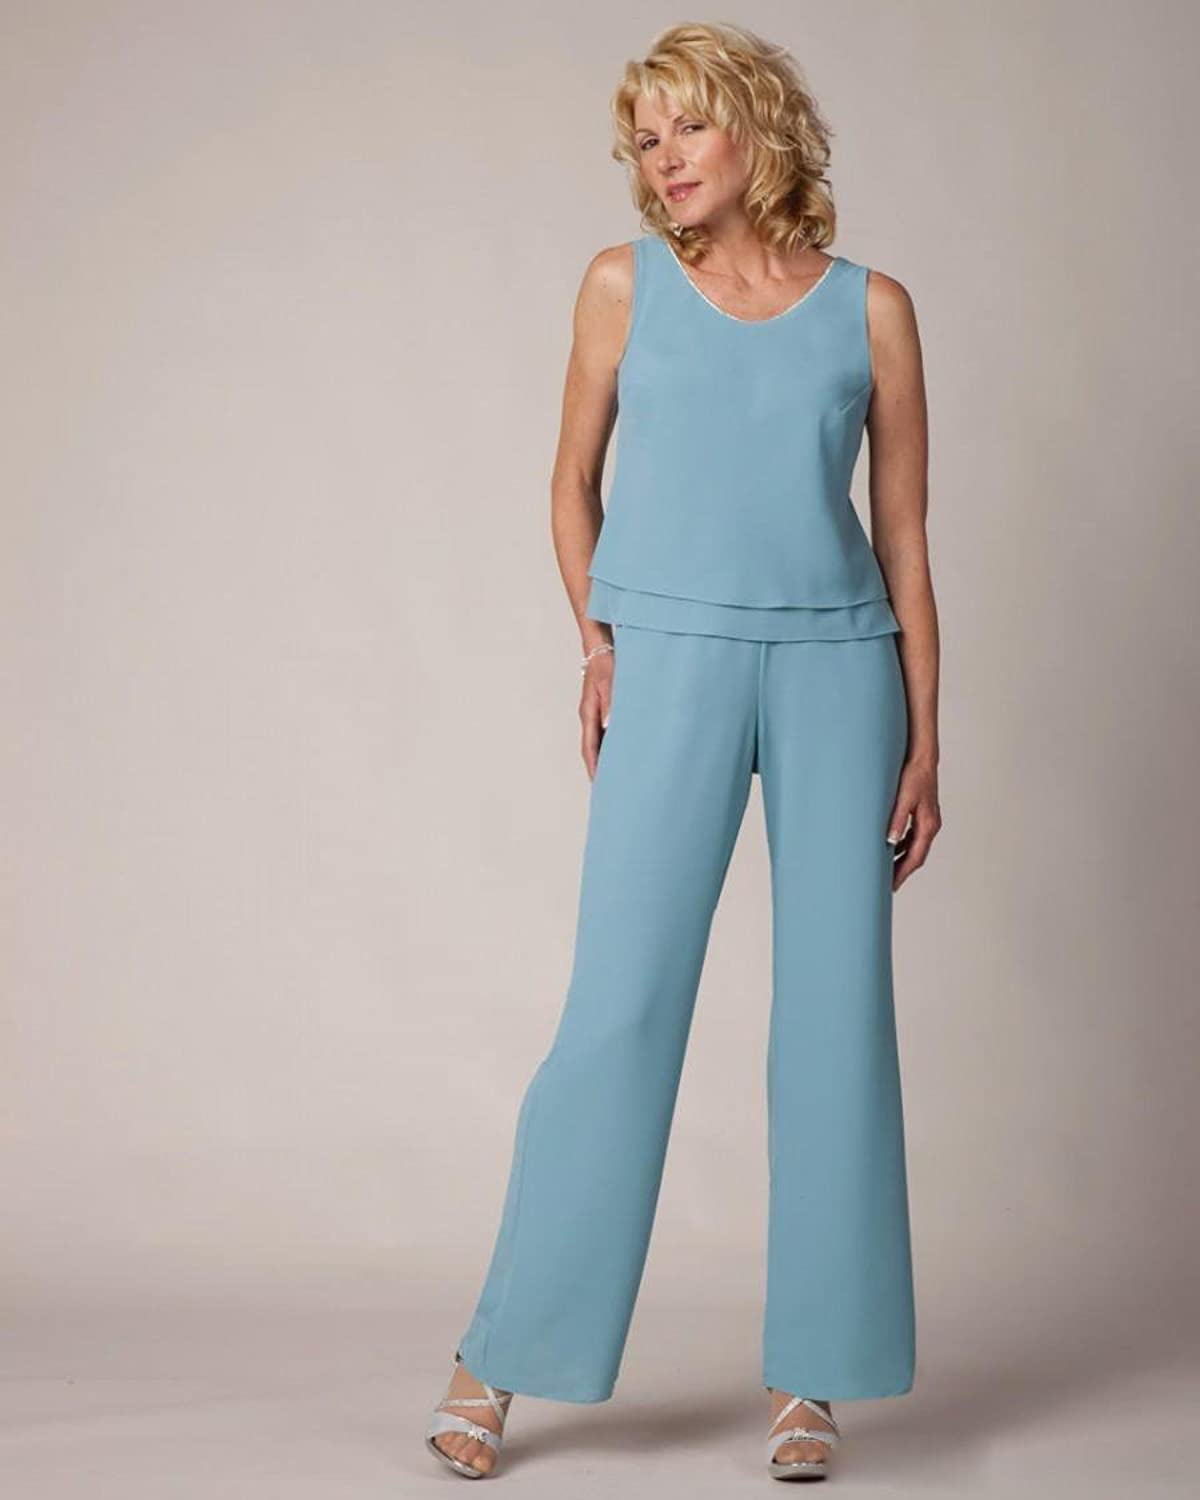 Kelaixiang Blue Chiffon Custom Made Mother of The Bride Pant Suits 3 ...